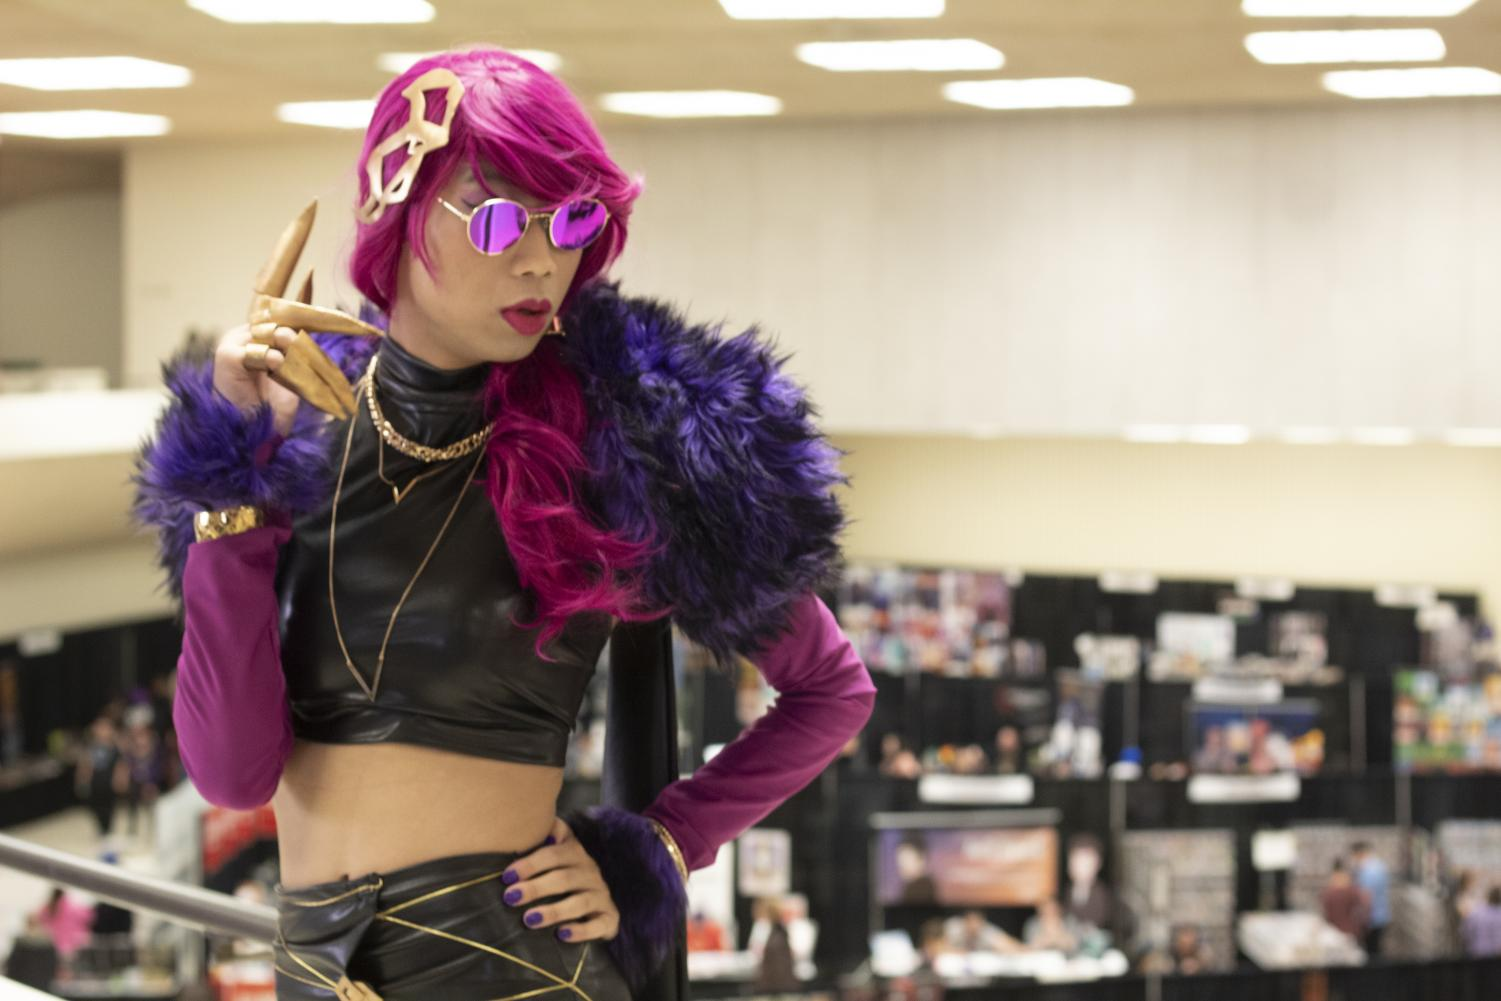 Anthony Vu, a junior engineering major, poses for a photo during Saturday's Air Capital Comic Con. Vu won Best of Show in the convention's contest for his portrayal of Evelynn from PC game